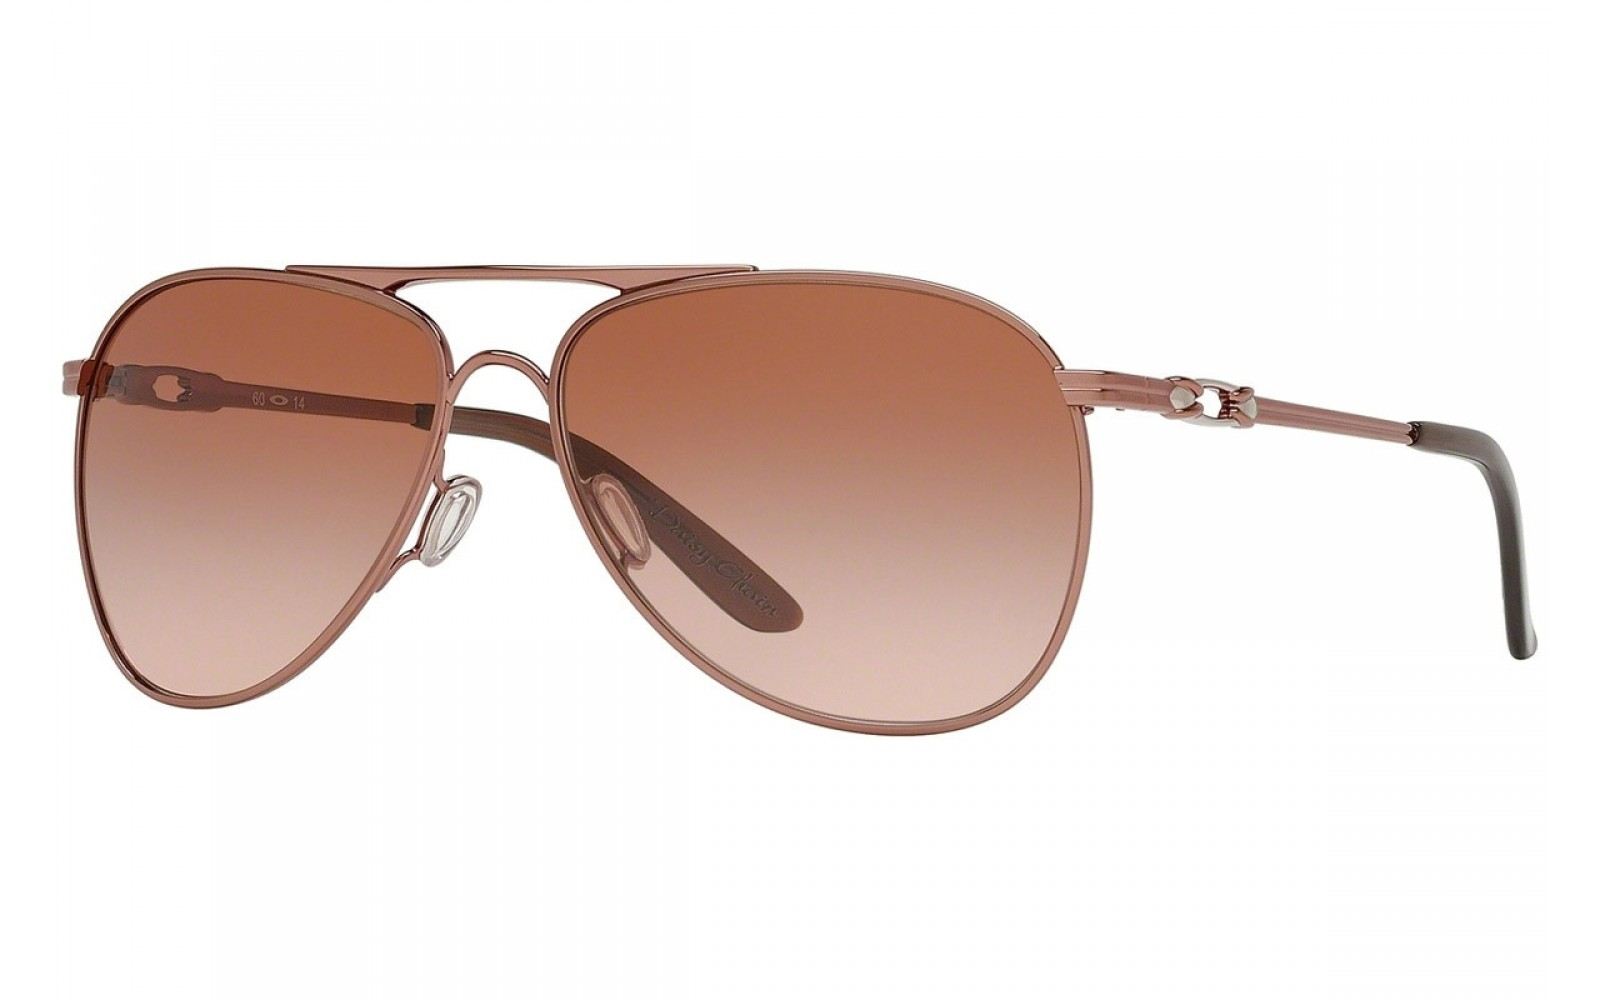 Oakley Daisy Chain - Rose Gold / VR50 Brown Gradient - OO4062-01 Zonnebril